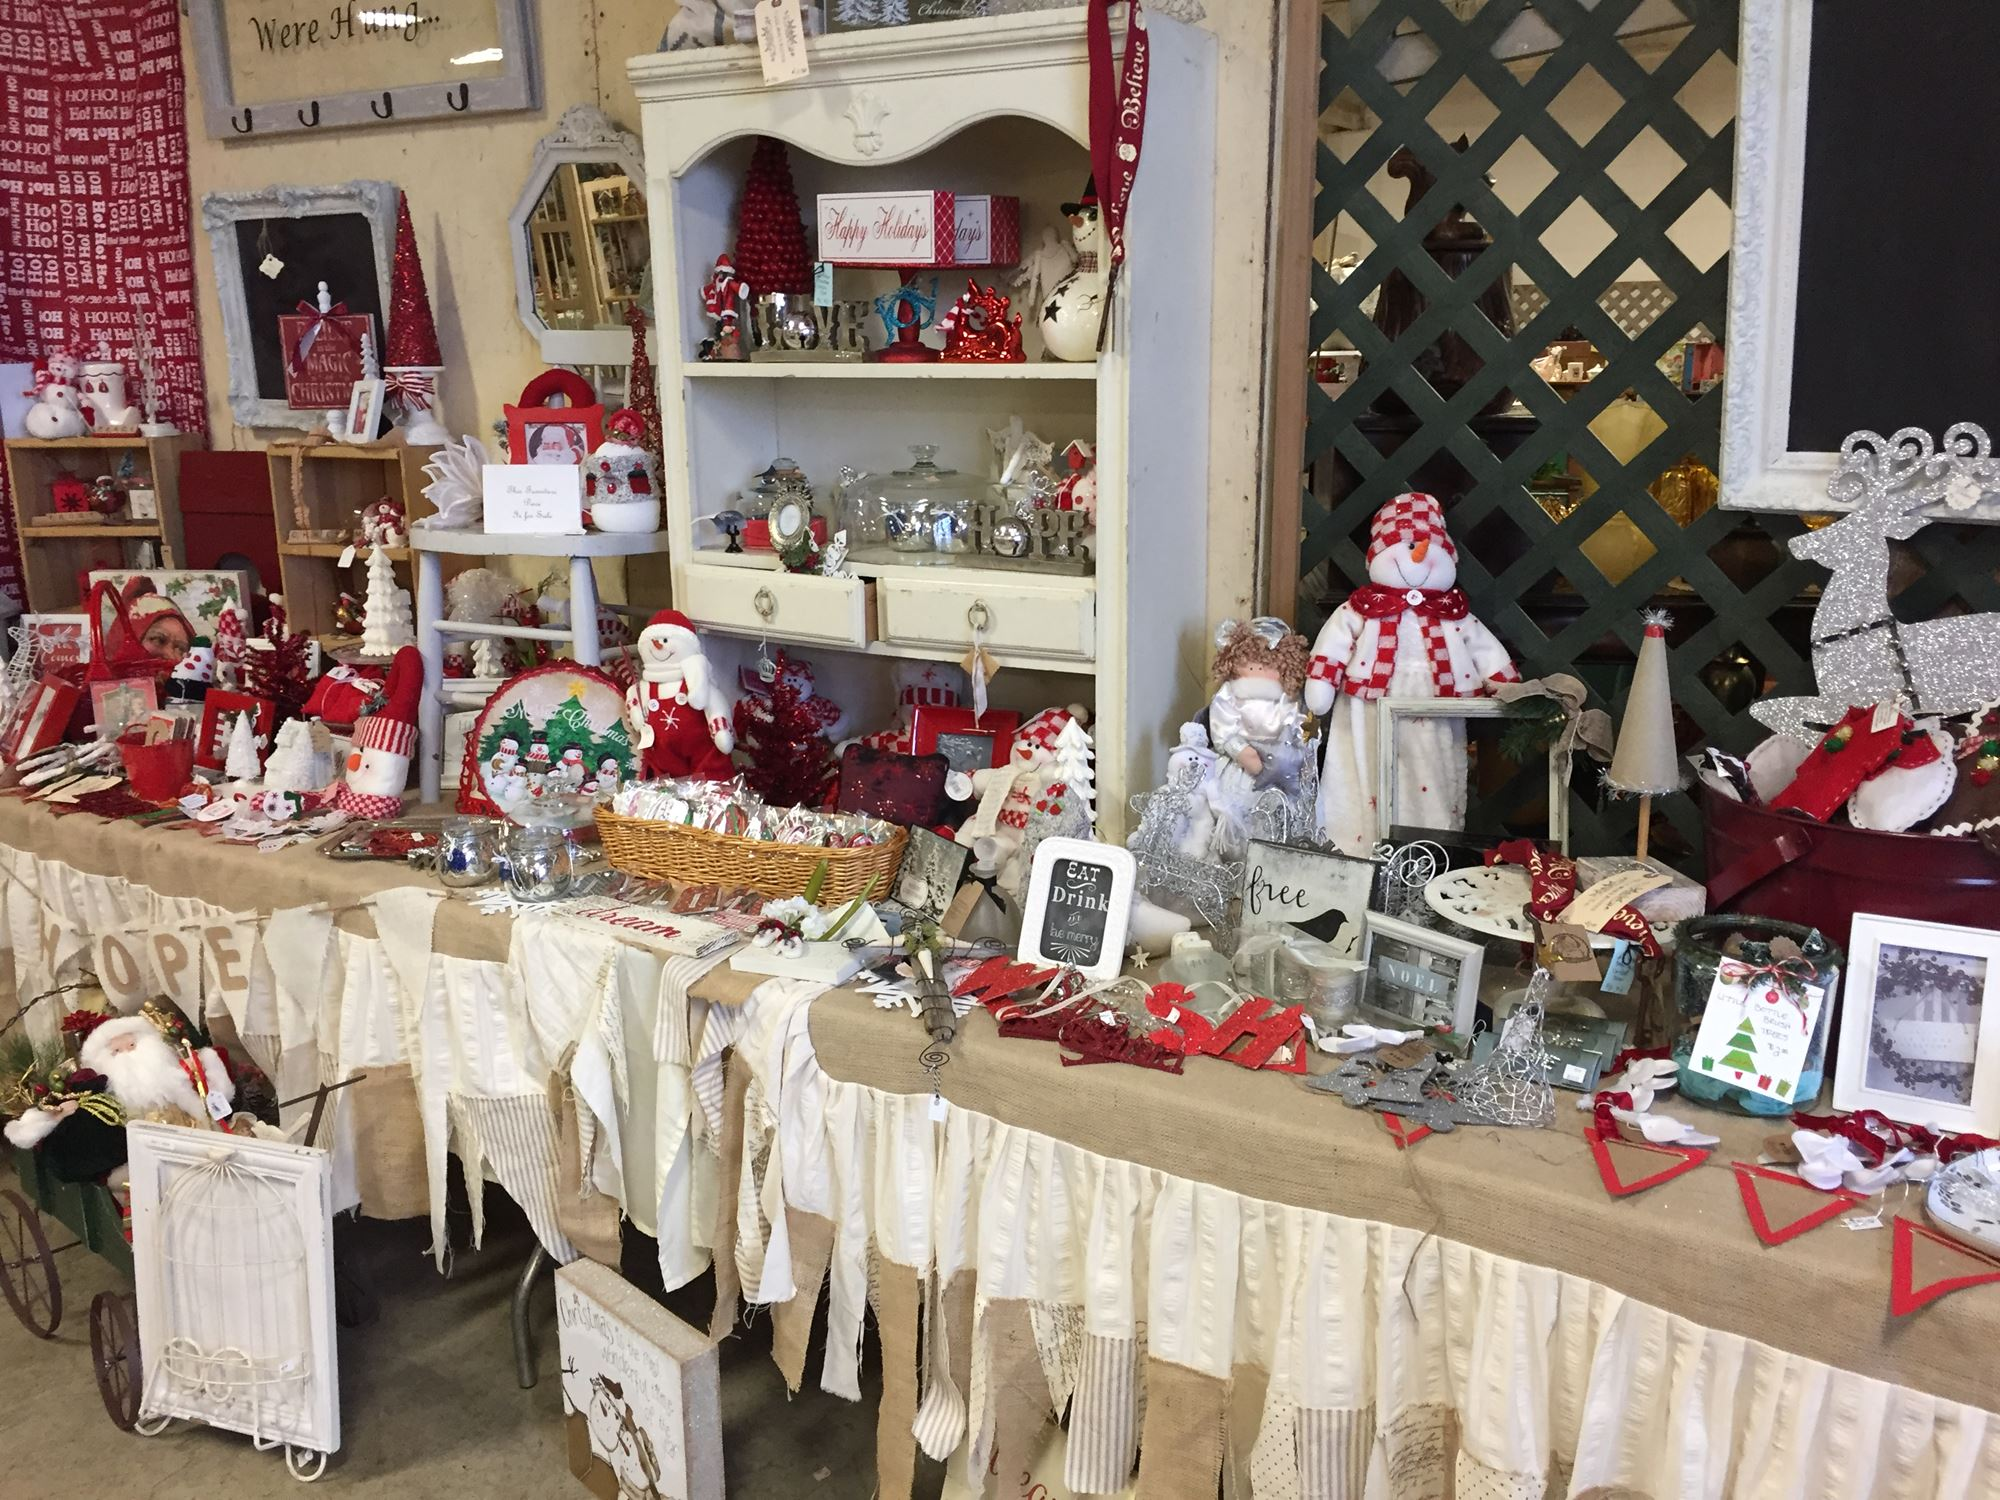 This is a photo that captures an example of a red and white-themed holiday display area at Every Husband's Nightmare Bazaar